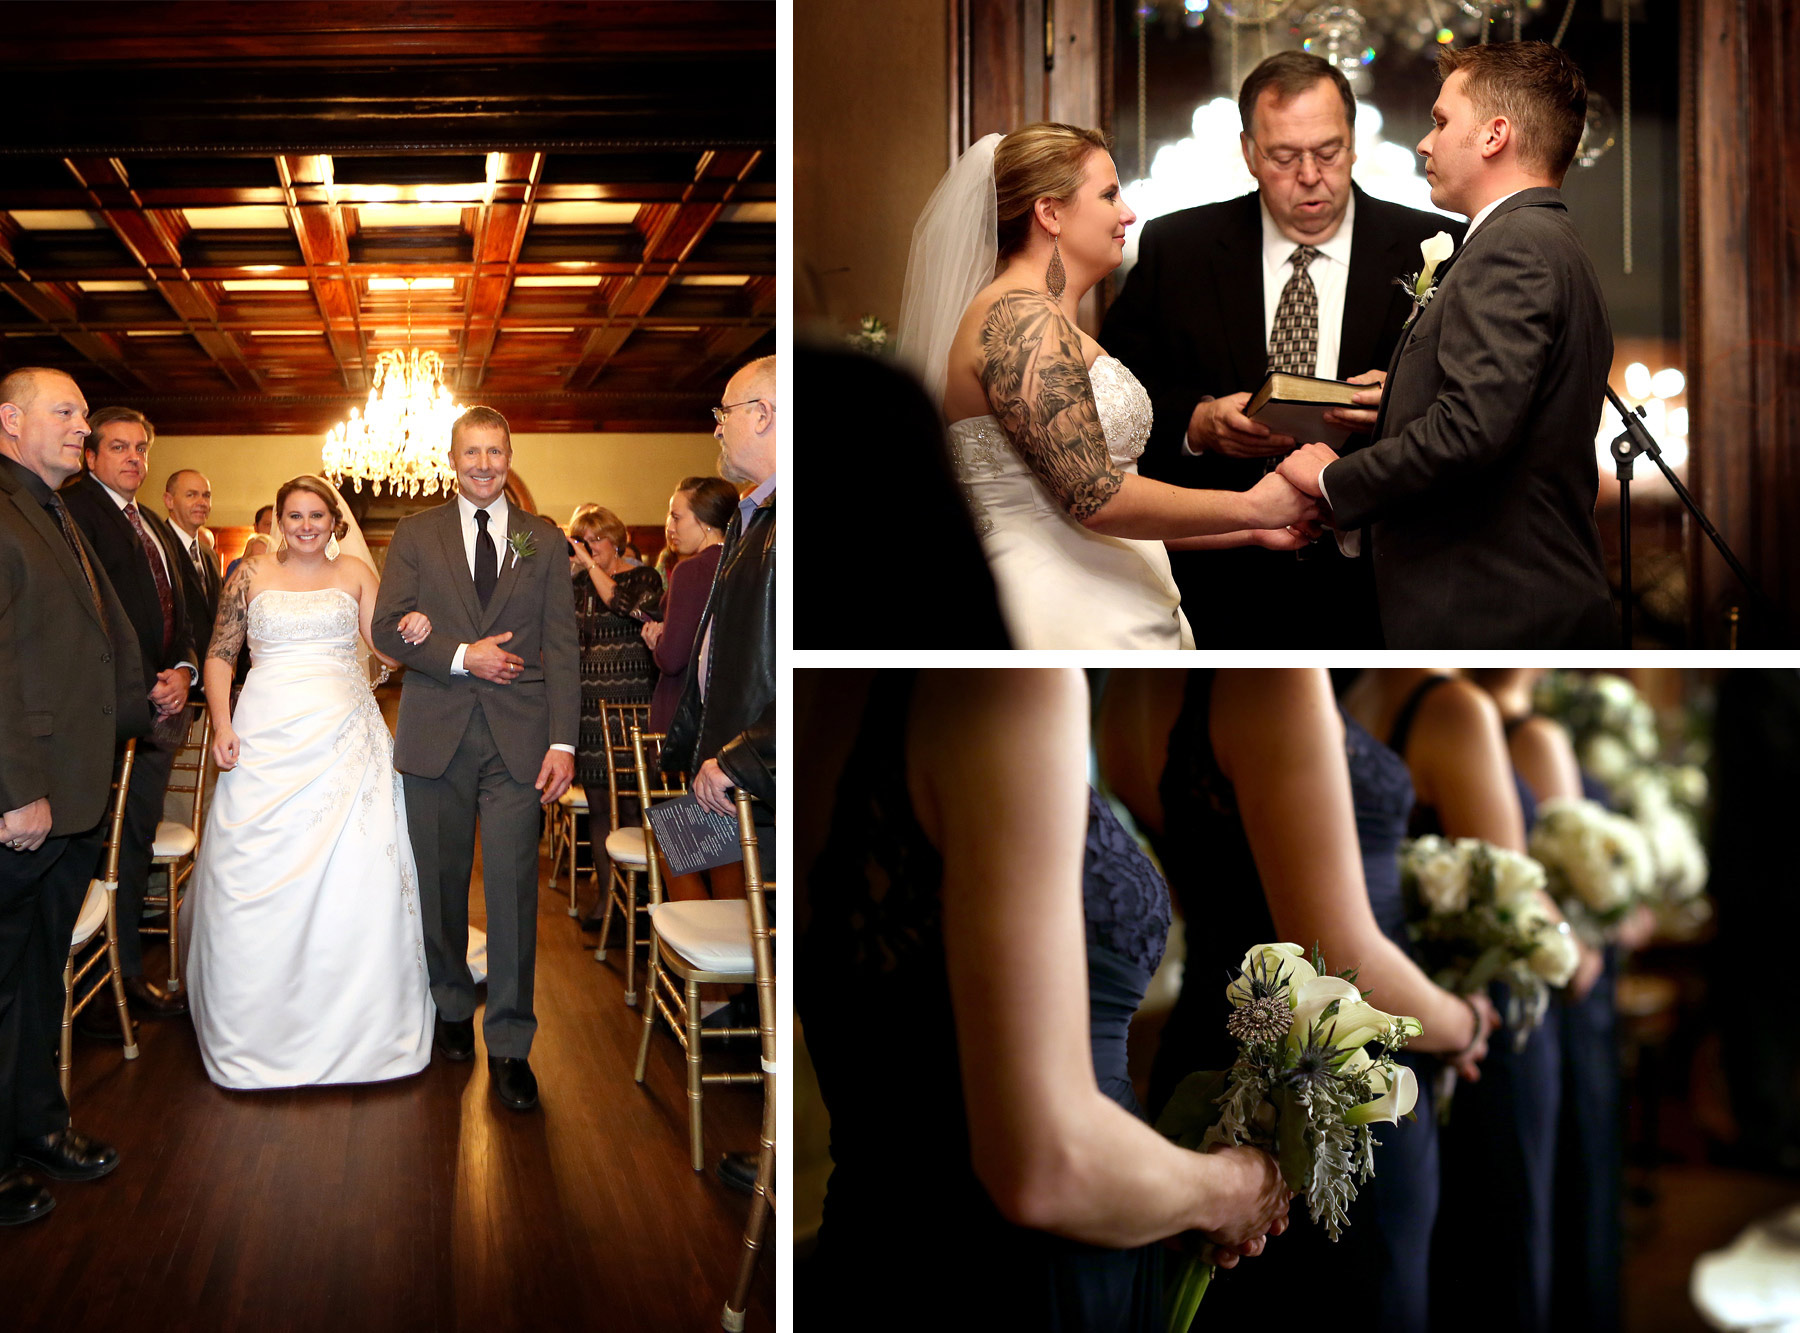 07-Minneapolis-Minnesota-Wedding-Photography-by-Vick-Photography-Semple-Mansion-Ceremony-Ariel-and-Jared.jpg